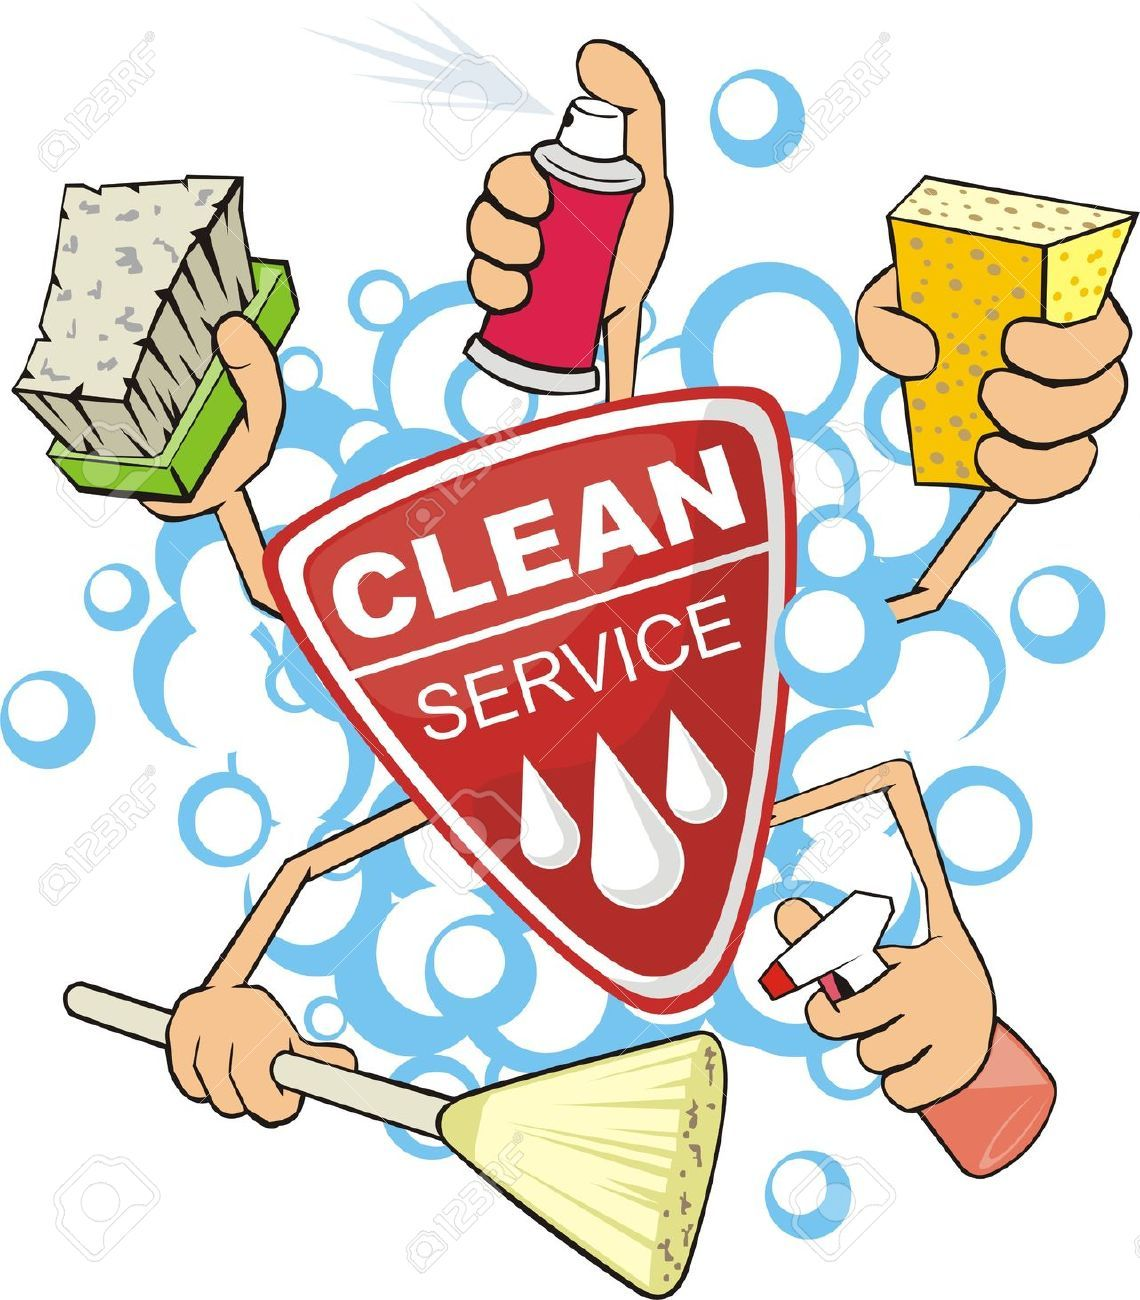 Cleaning services clipart 1 » Clipart Portal.